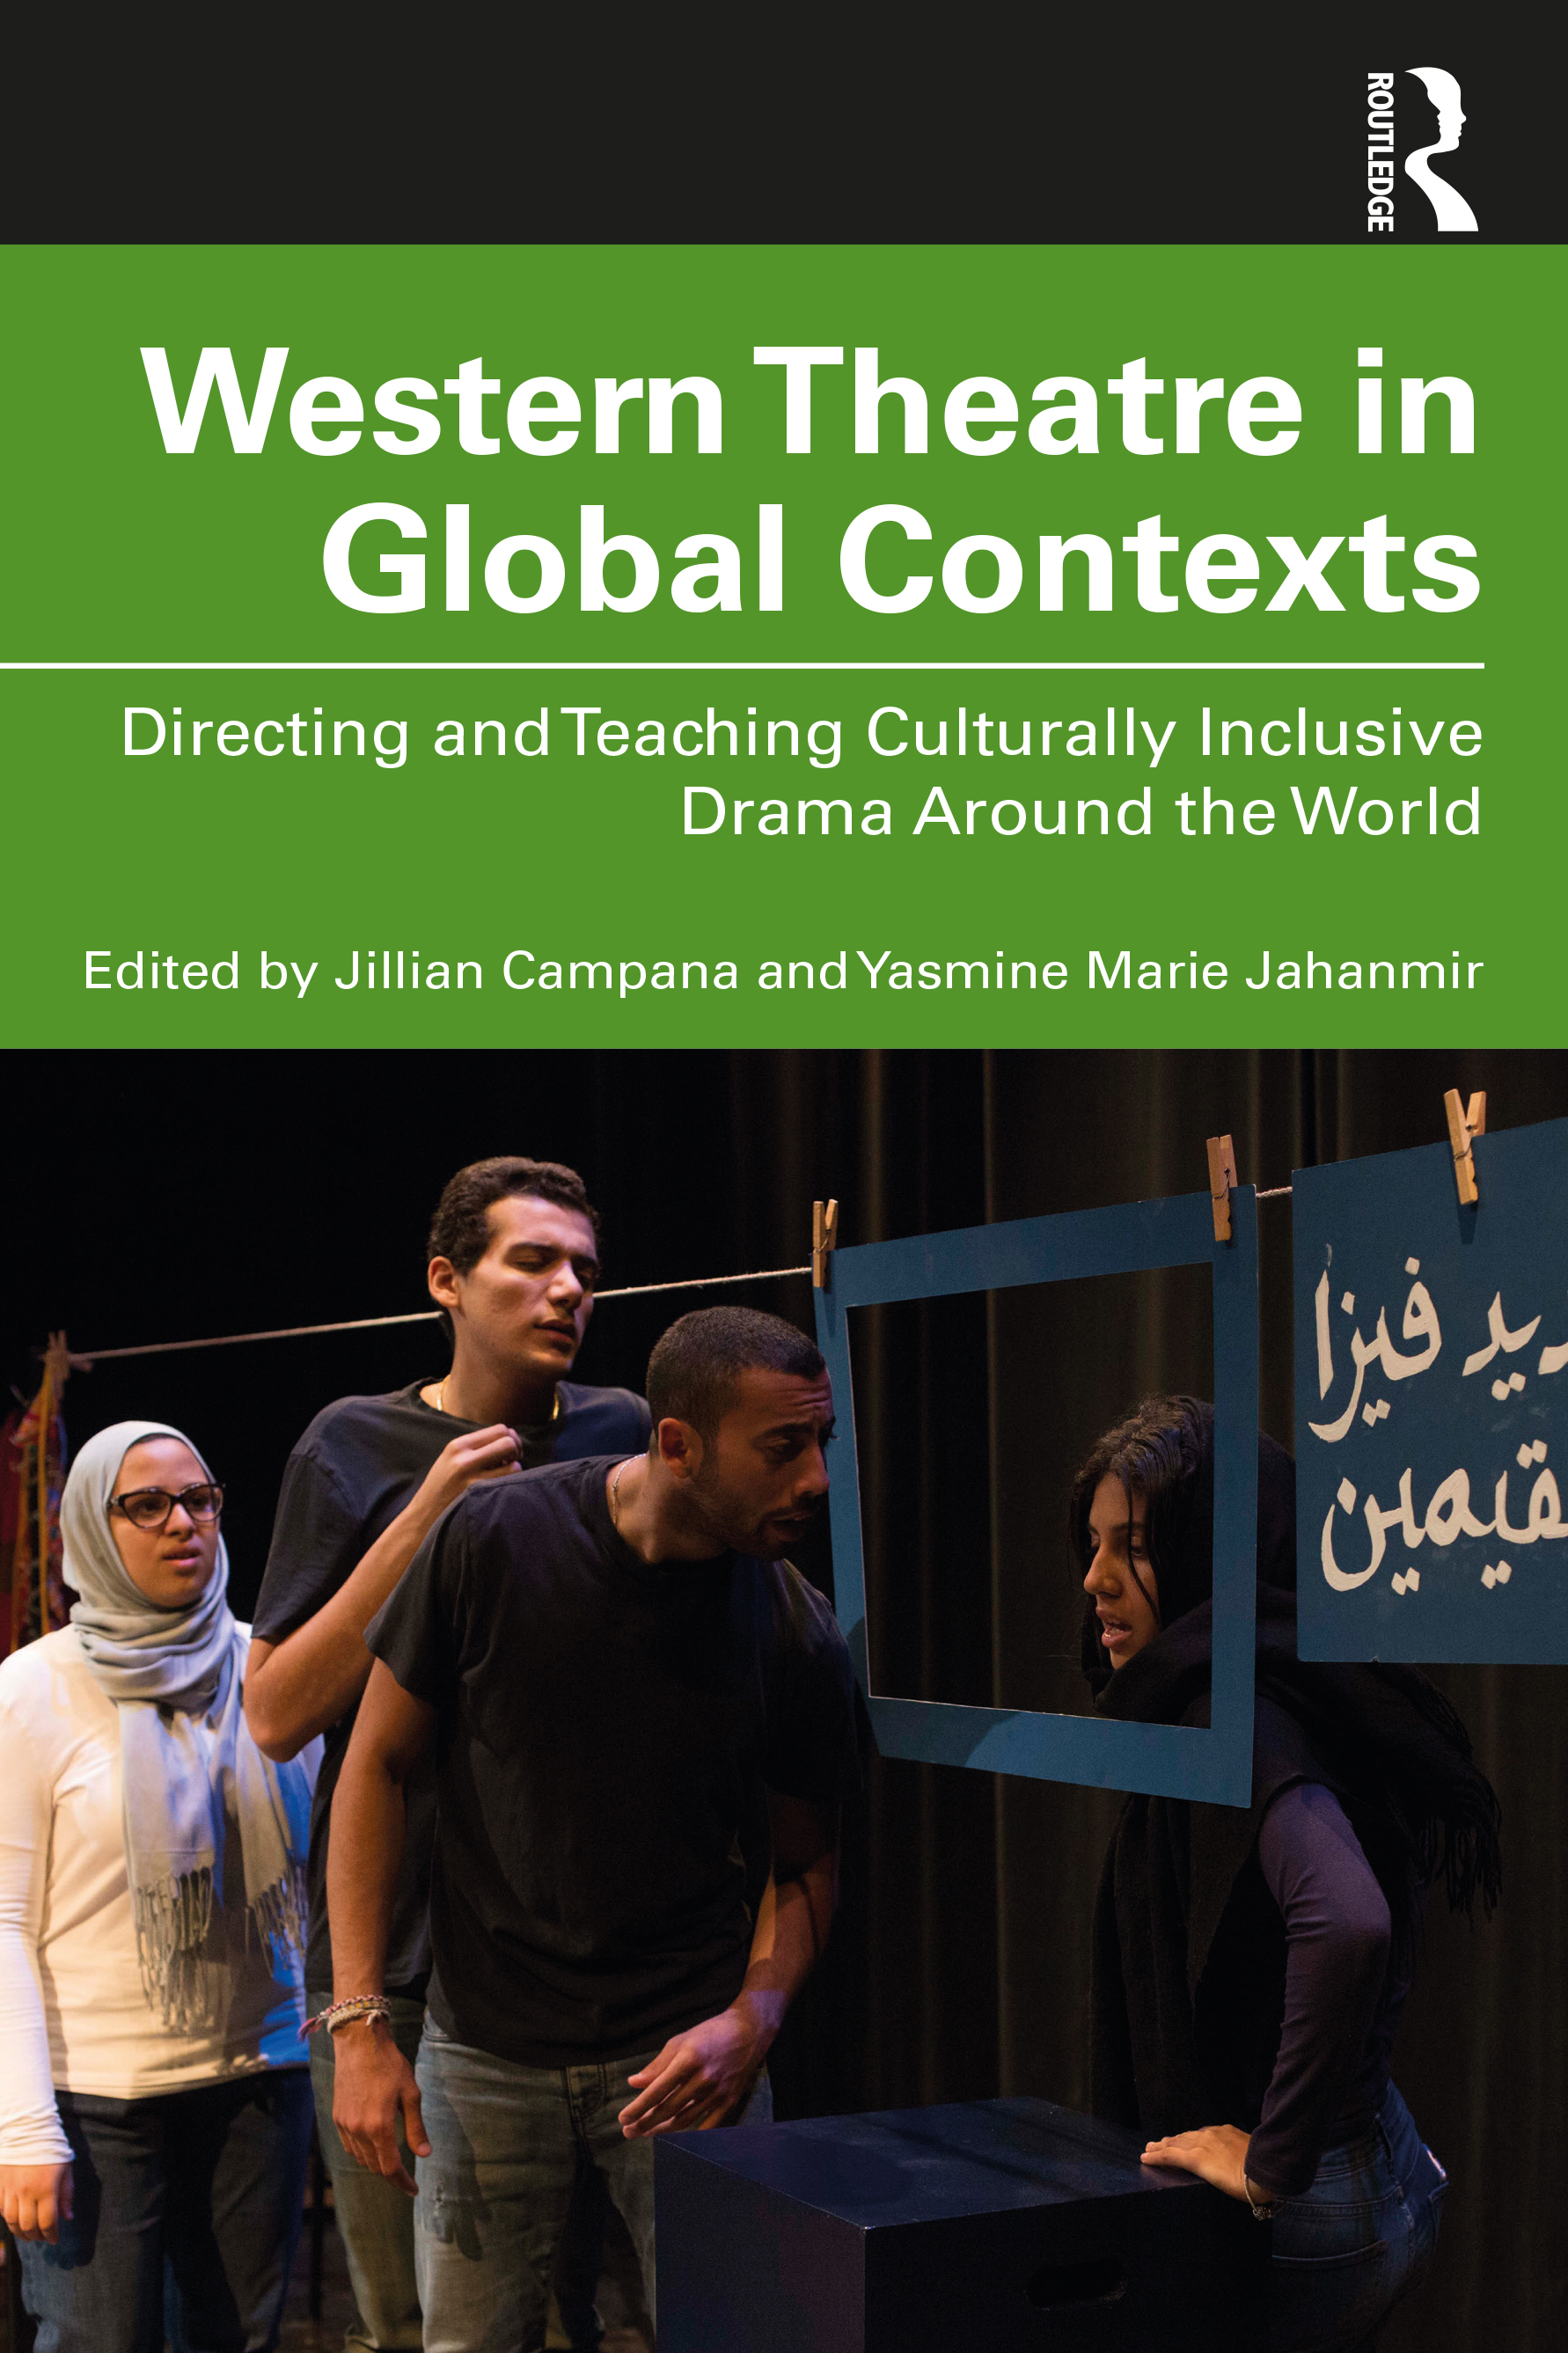 Western Theatre in Global Contexts